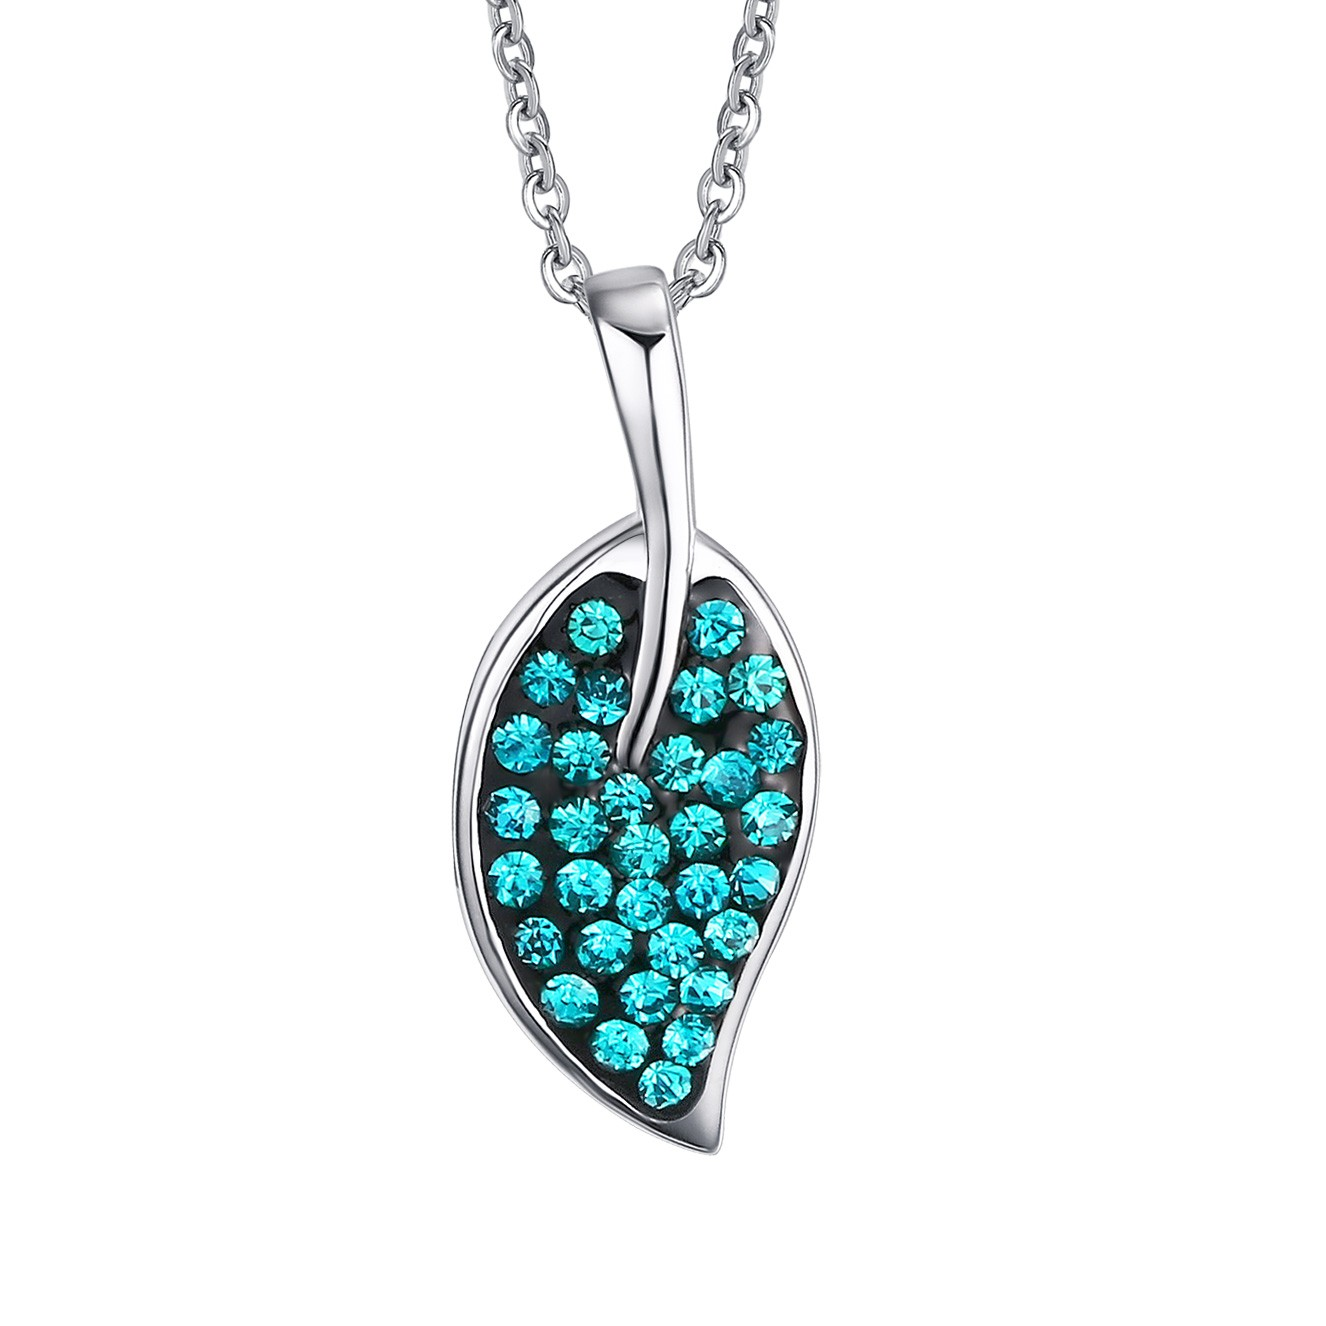 Leaf Design 925 Sterling Silver With Gemstone Necklace